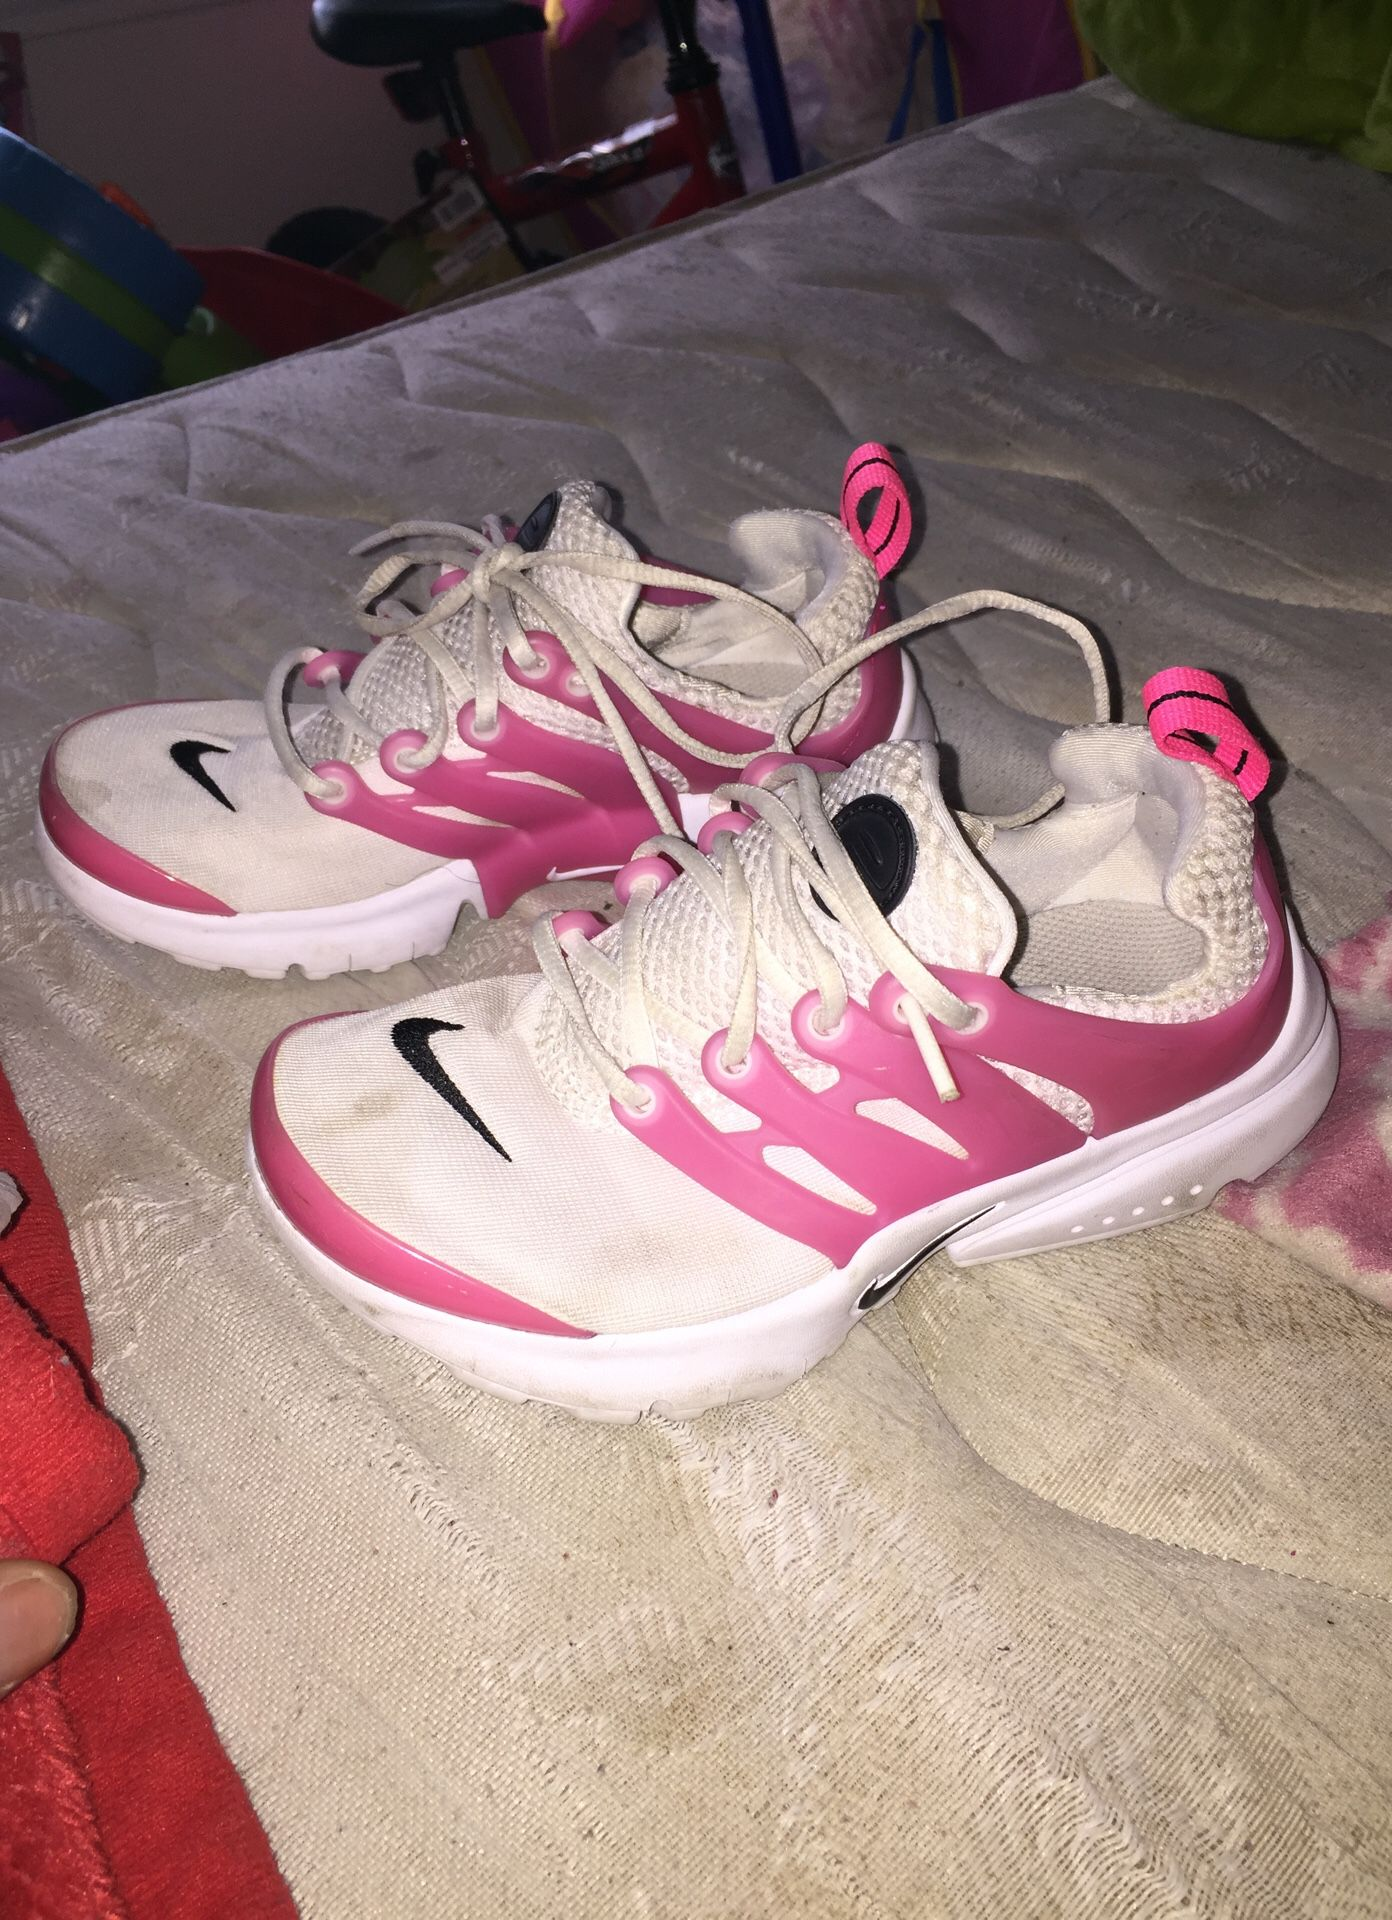 Nike's size 1Y for girls